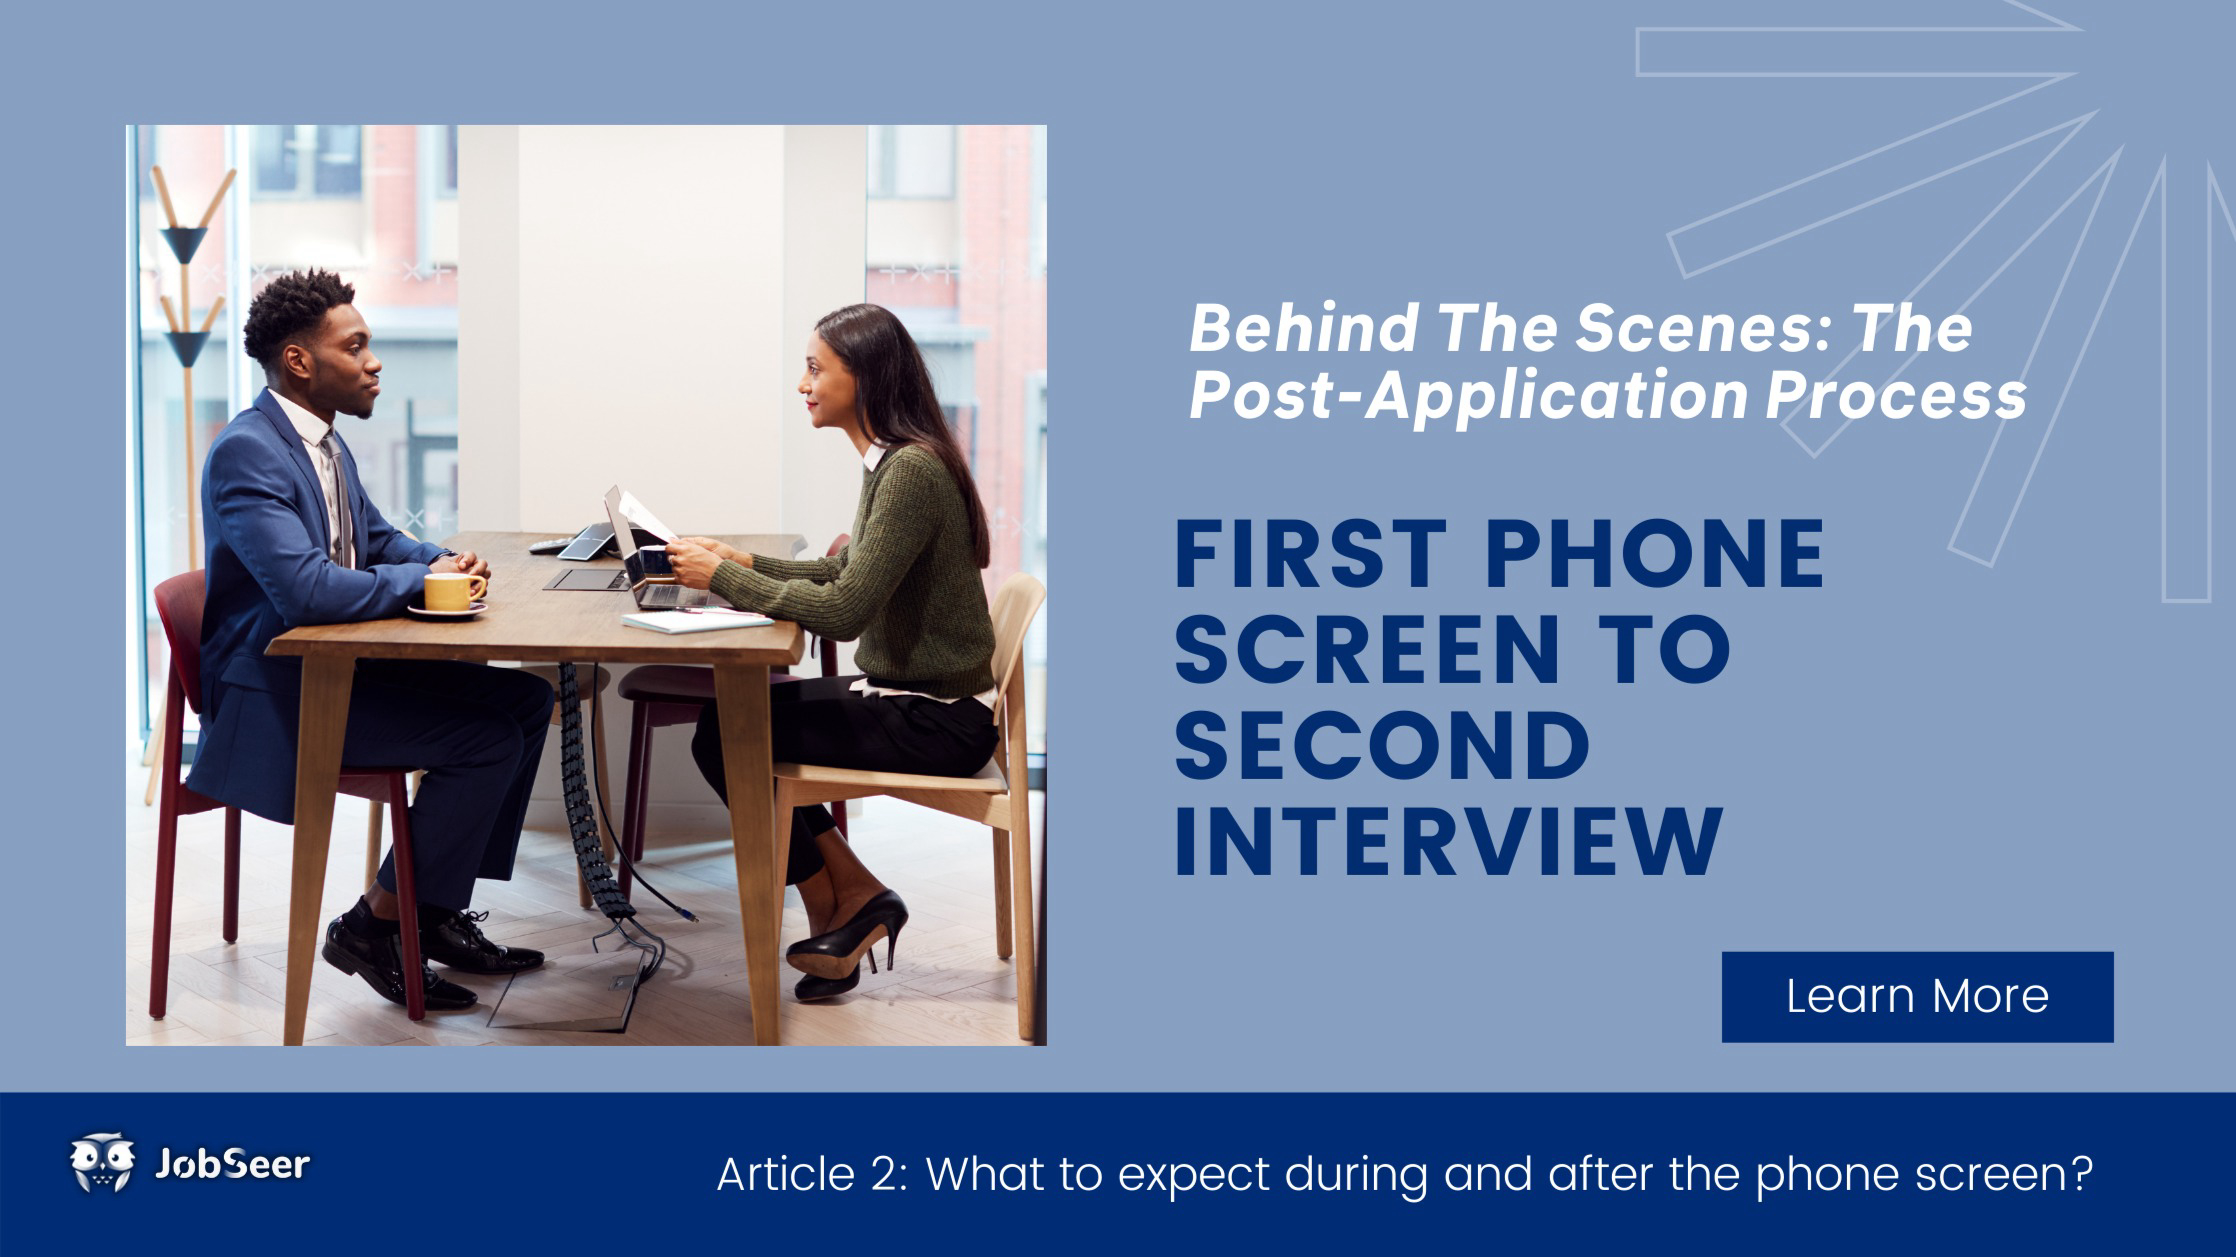 behind-the-scenes-of-the-post-application-process-first-phone-screen-to-second-interview